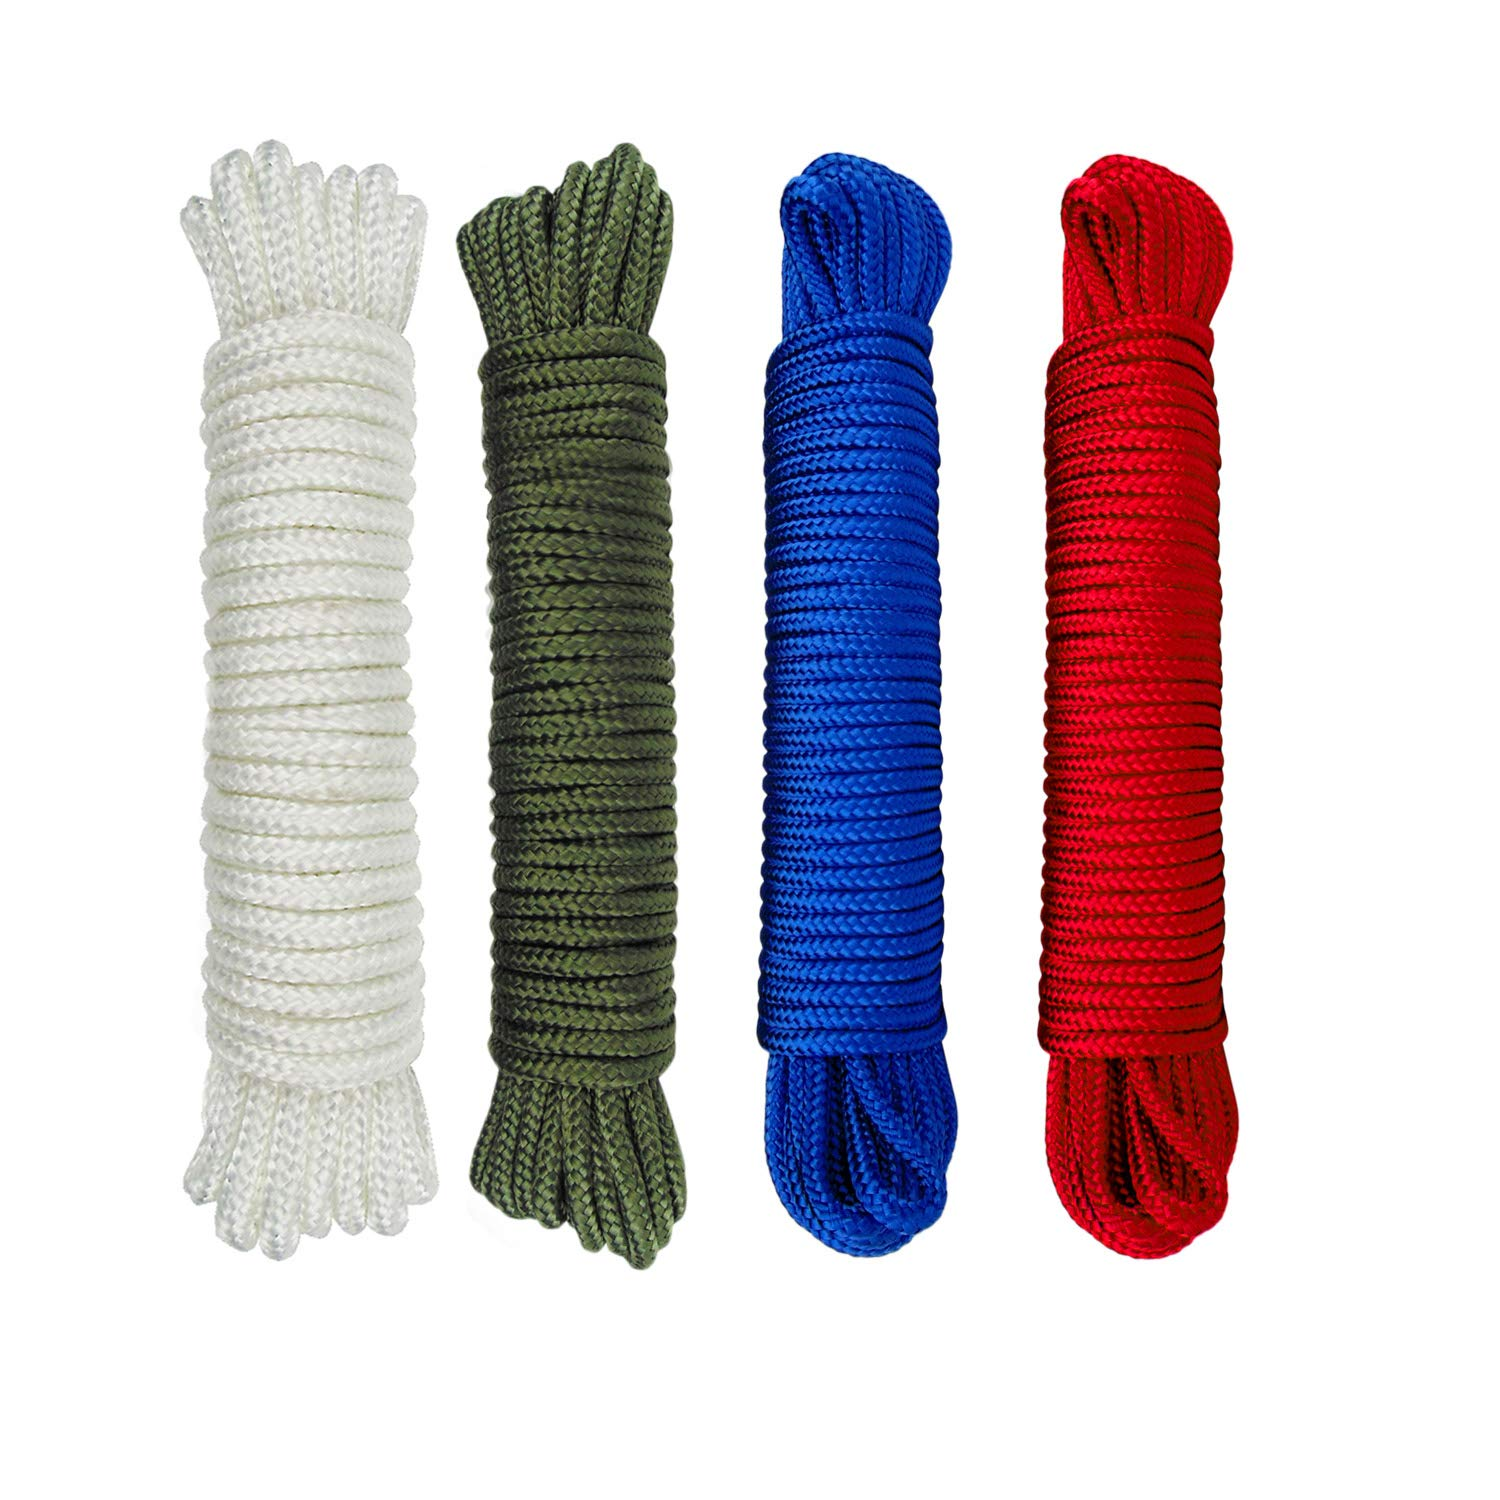 Tie-Downs Cargo Towing Anchors High Strength Commercial Crafts 250 feet - Royal Blue Pulleys 1//4 inch Nylon Rope SGT KNOTS Multipurpose Braided Utility Cord Line Solid Braid Blocks